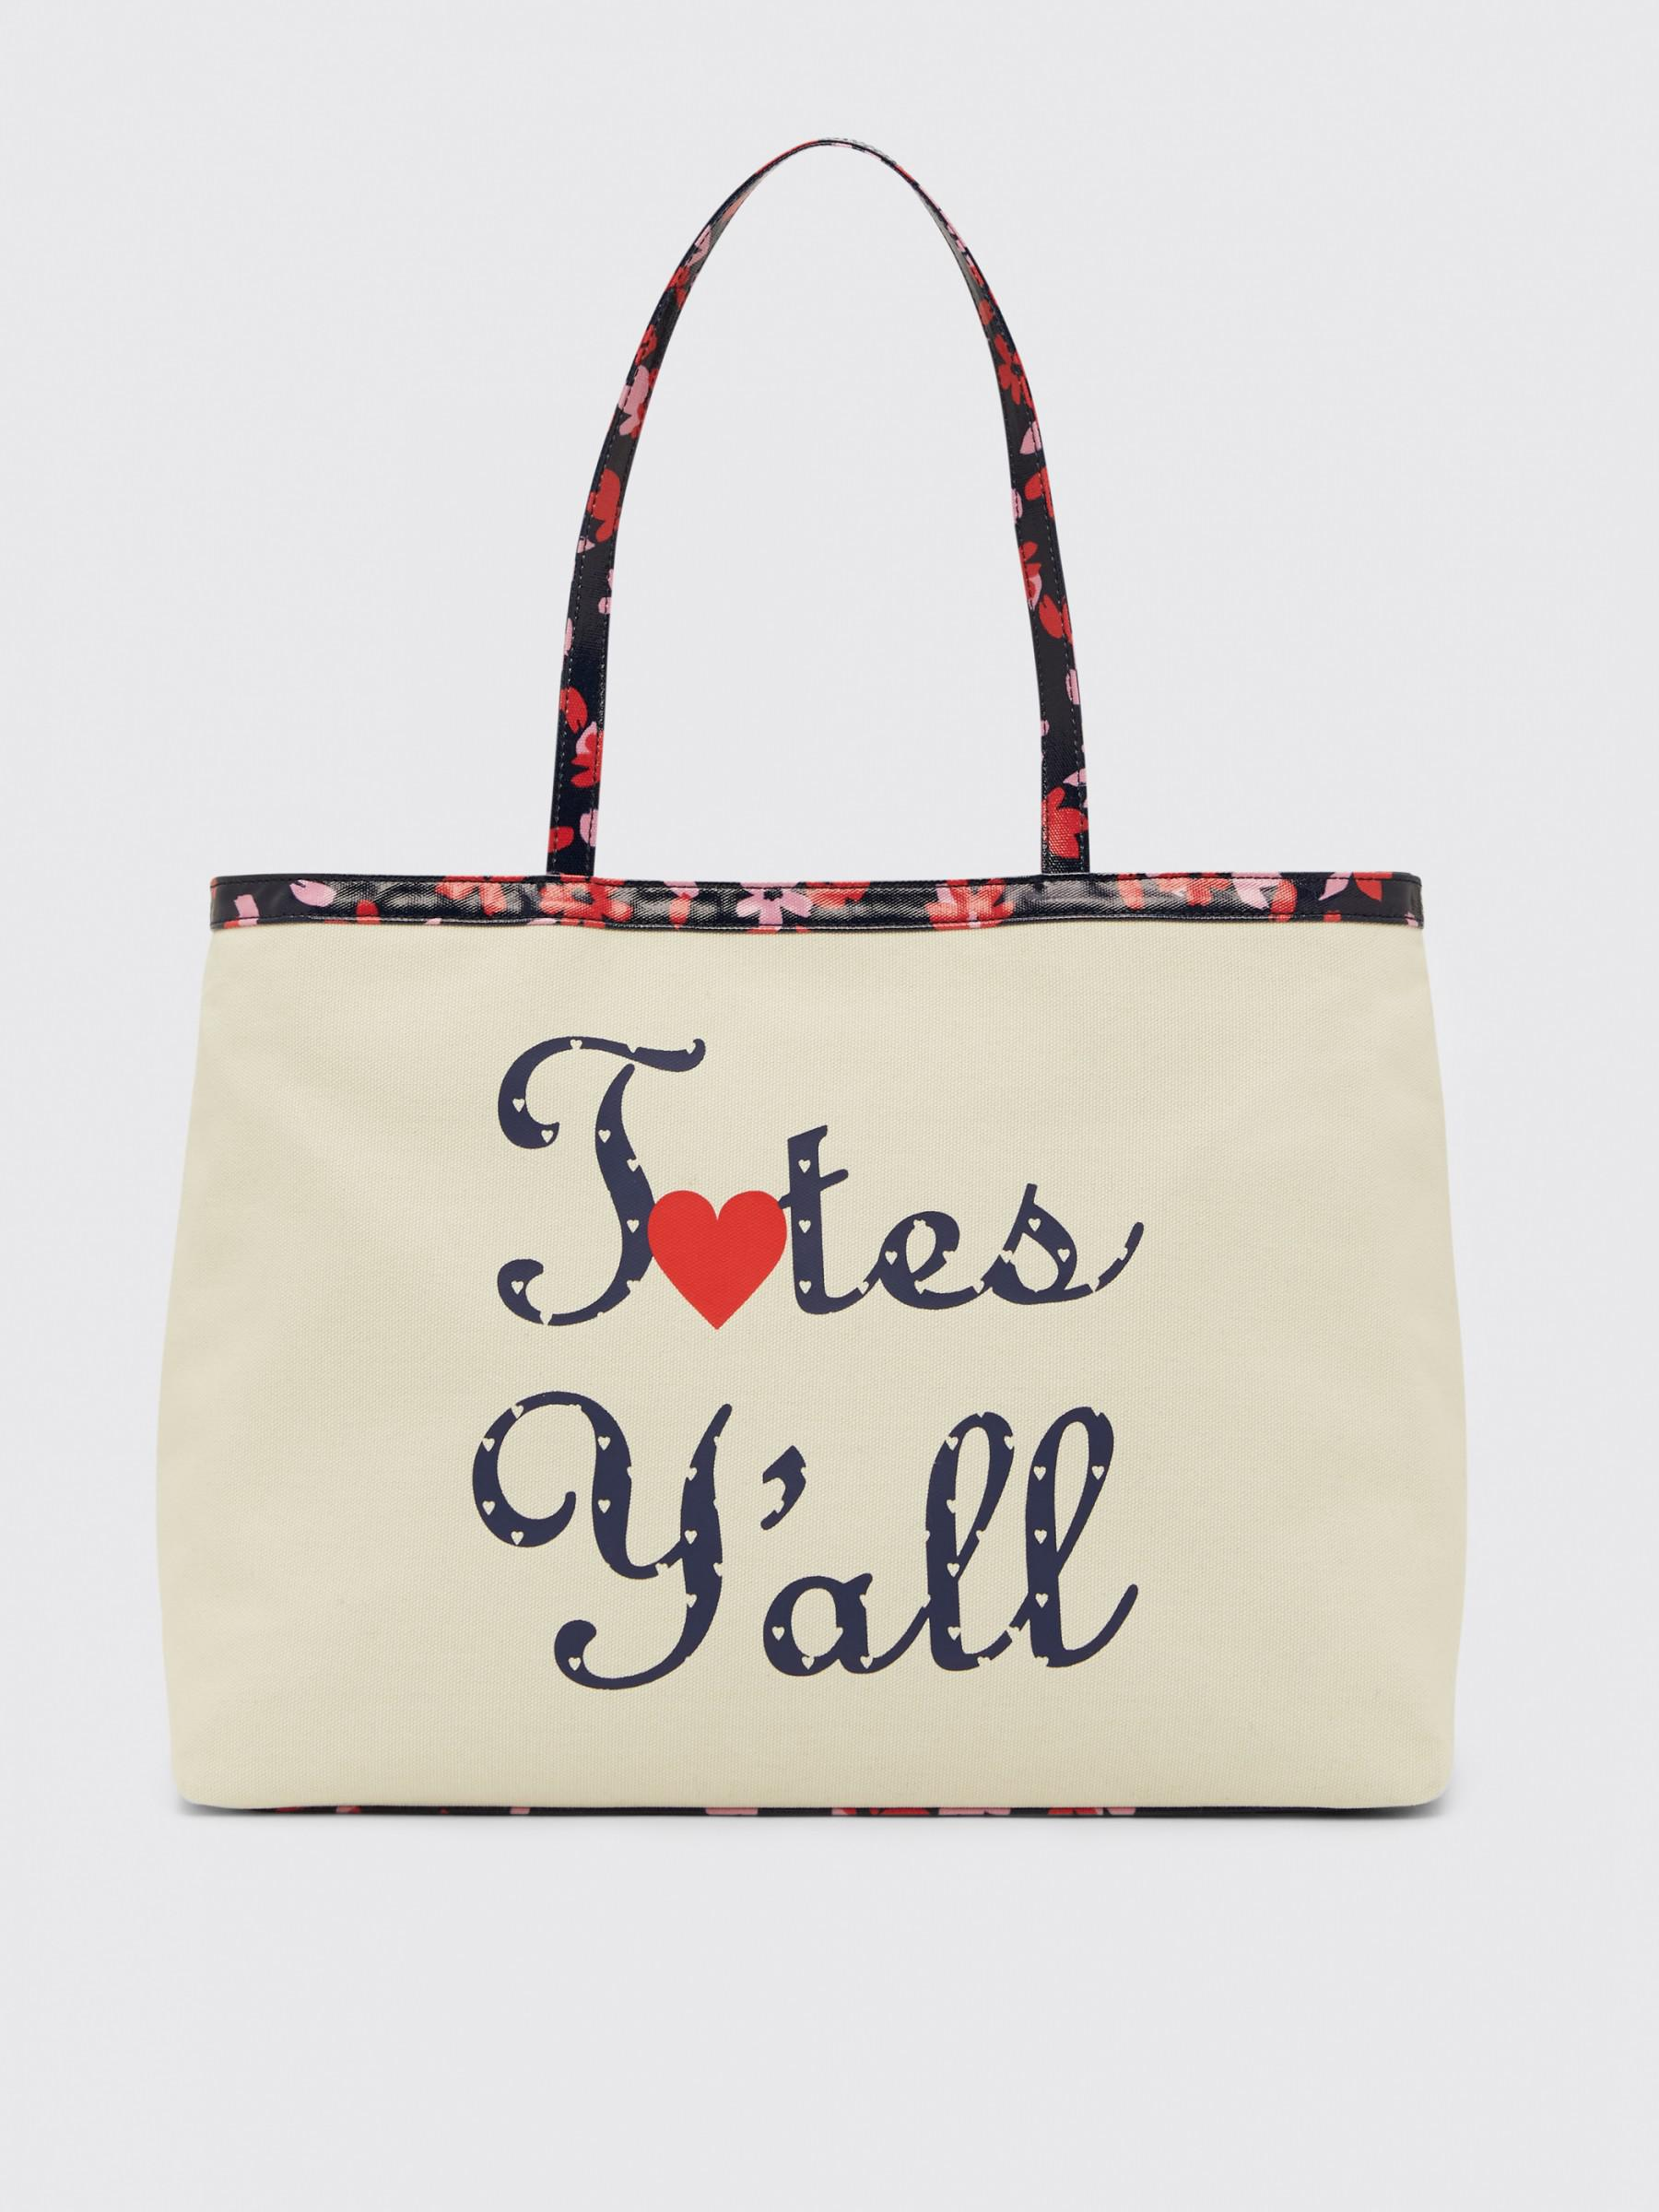 a260122af75 Totes Yall Tote Bag